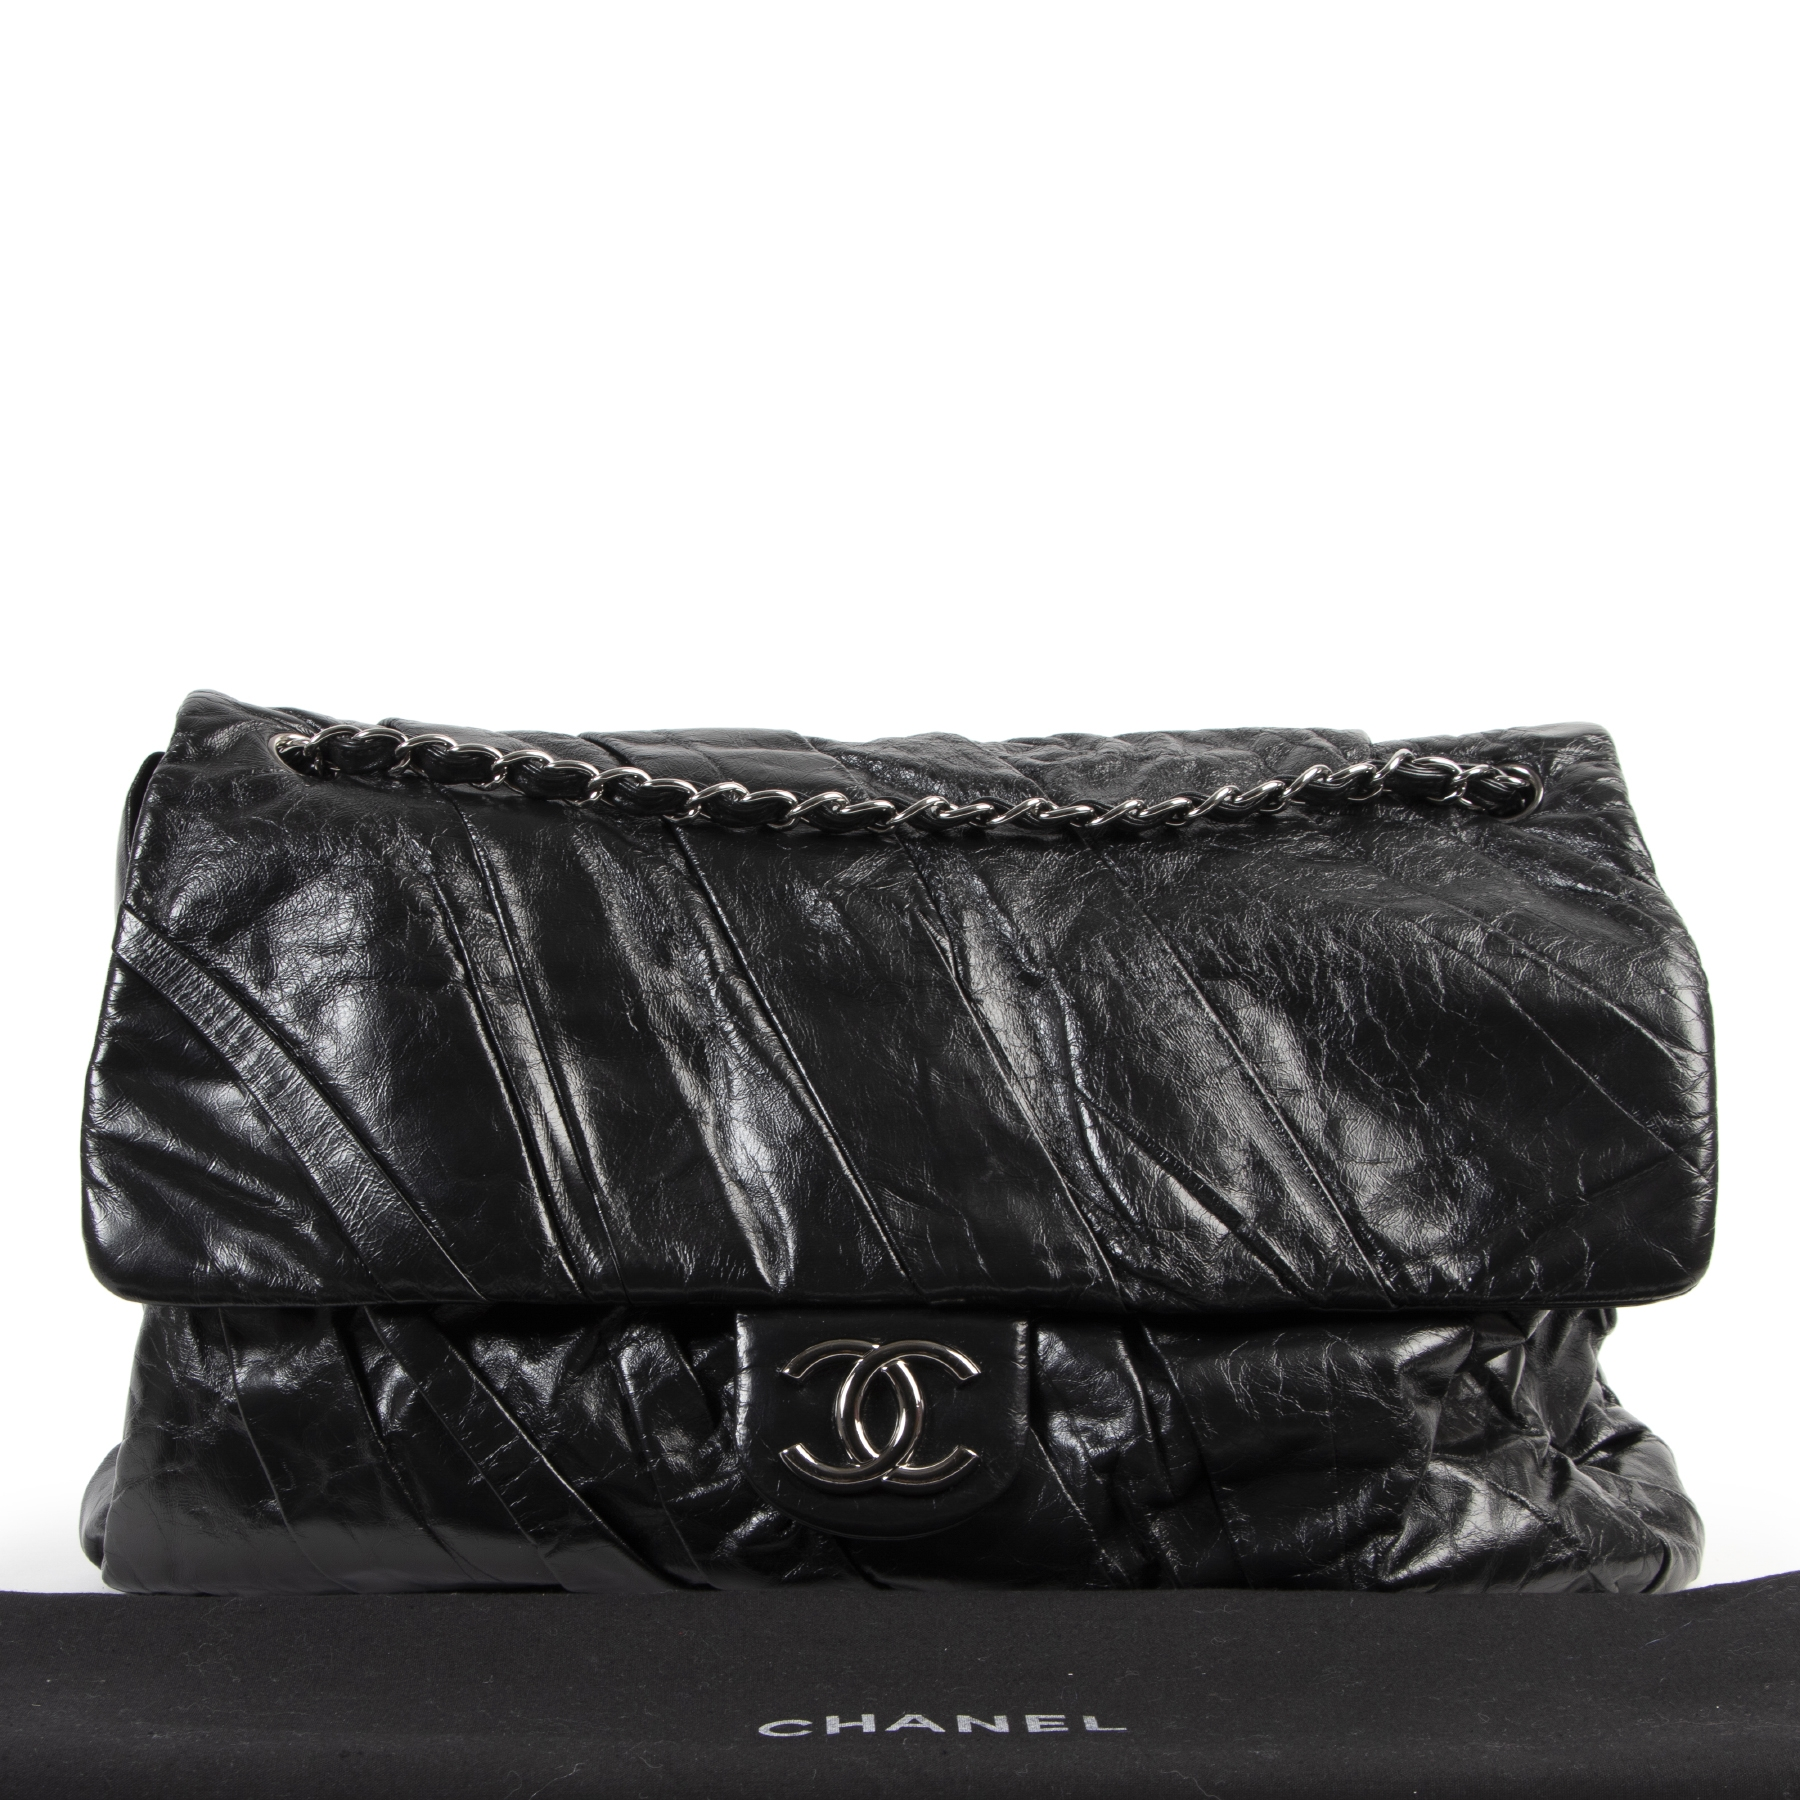 Chanel Black Leather Shoulder Bag for the best price at Labellov secondhand luxury